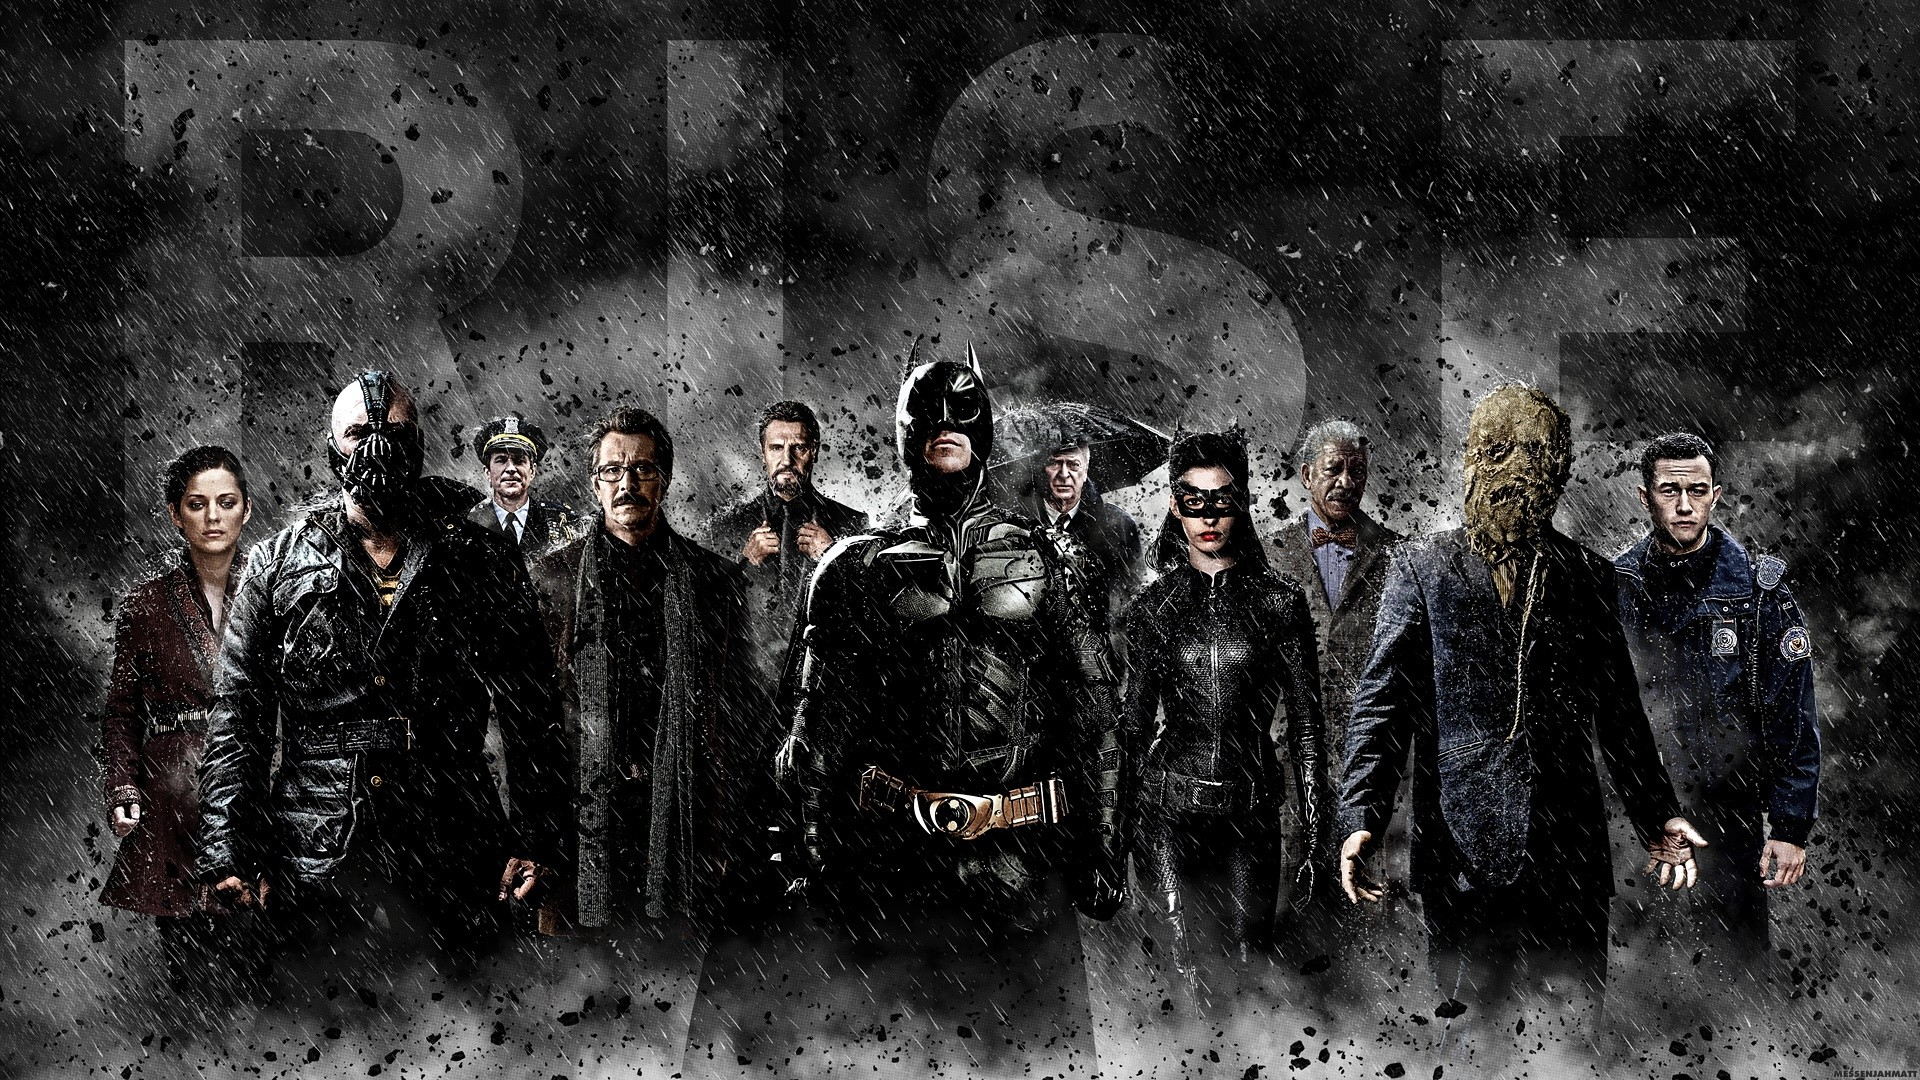 dark-Police-Rain-Catsuits-Glasses-Batman-Bane-Scarecrow-character-Jim-Gordon-People-The-wallpaper-wpc9004037